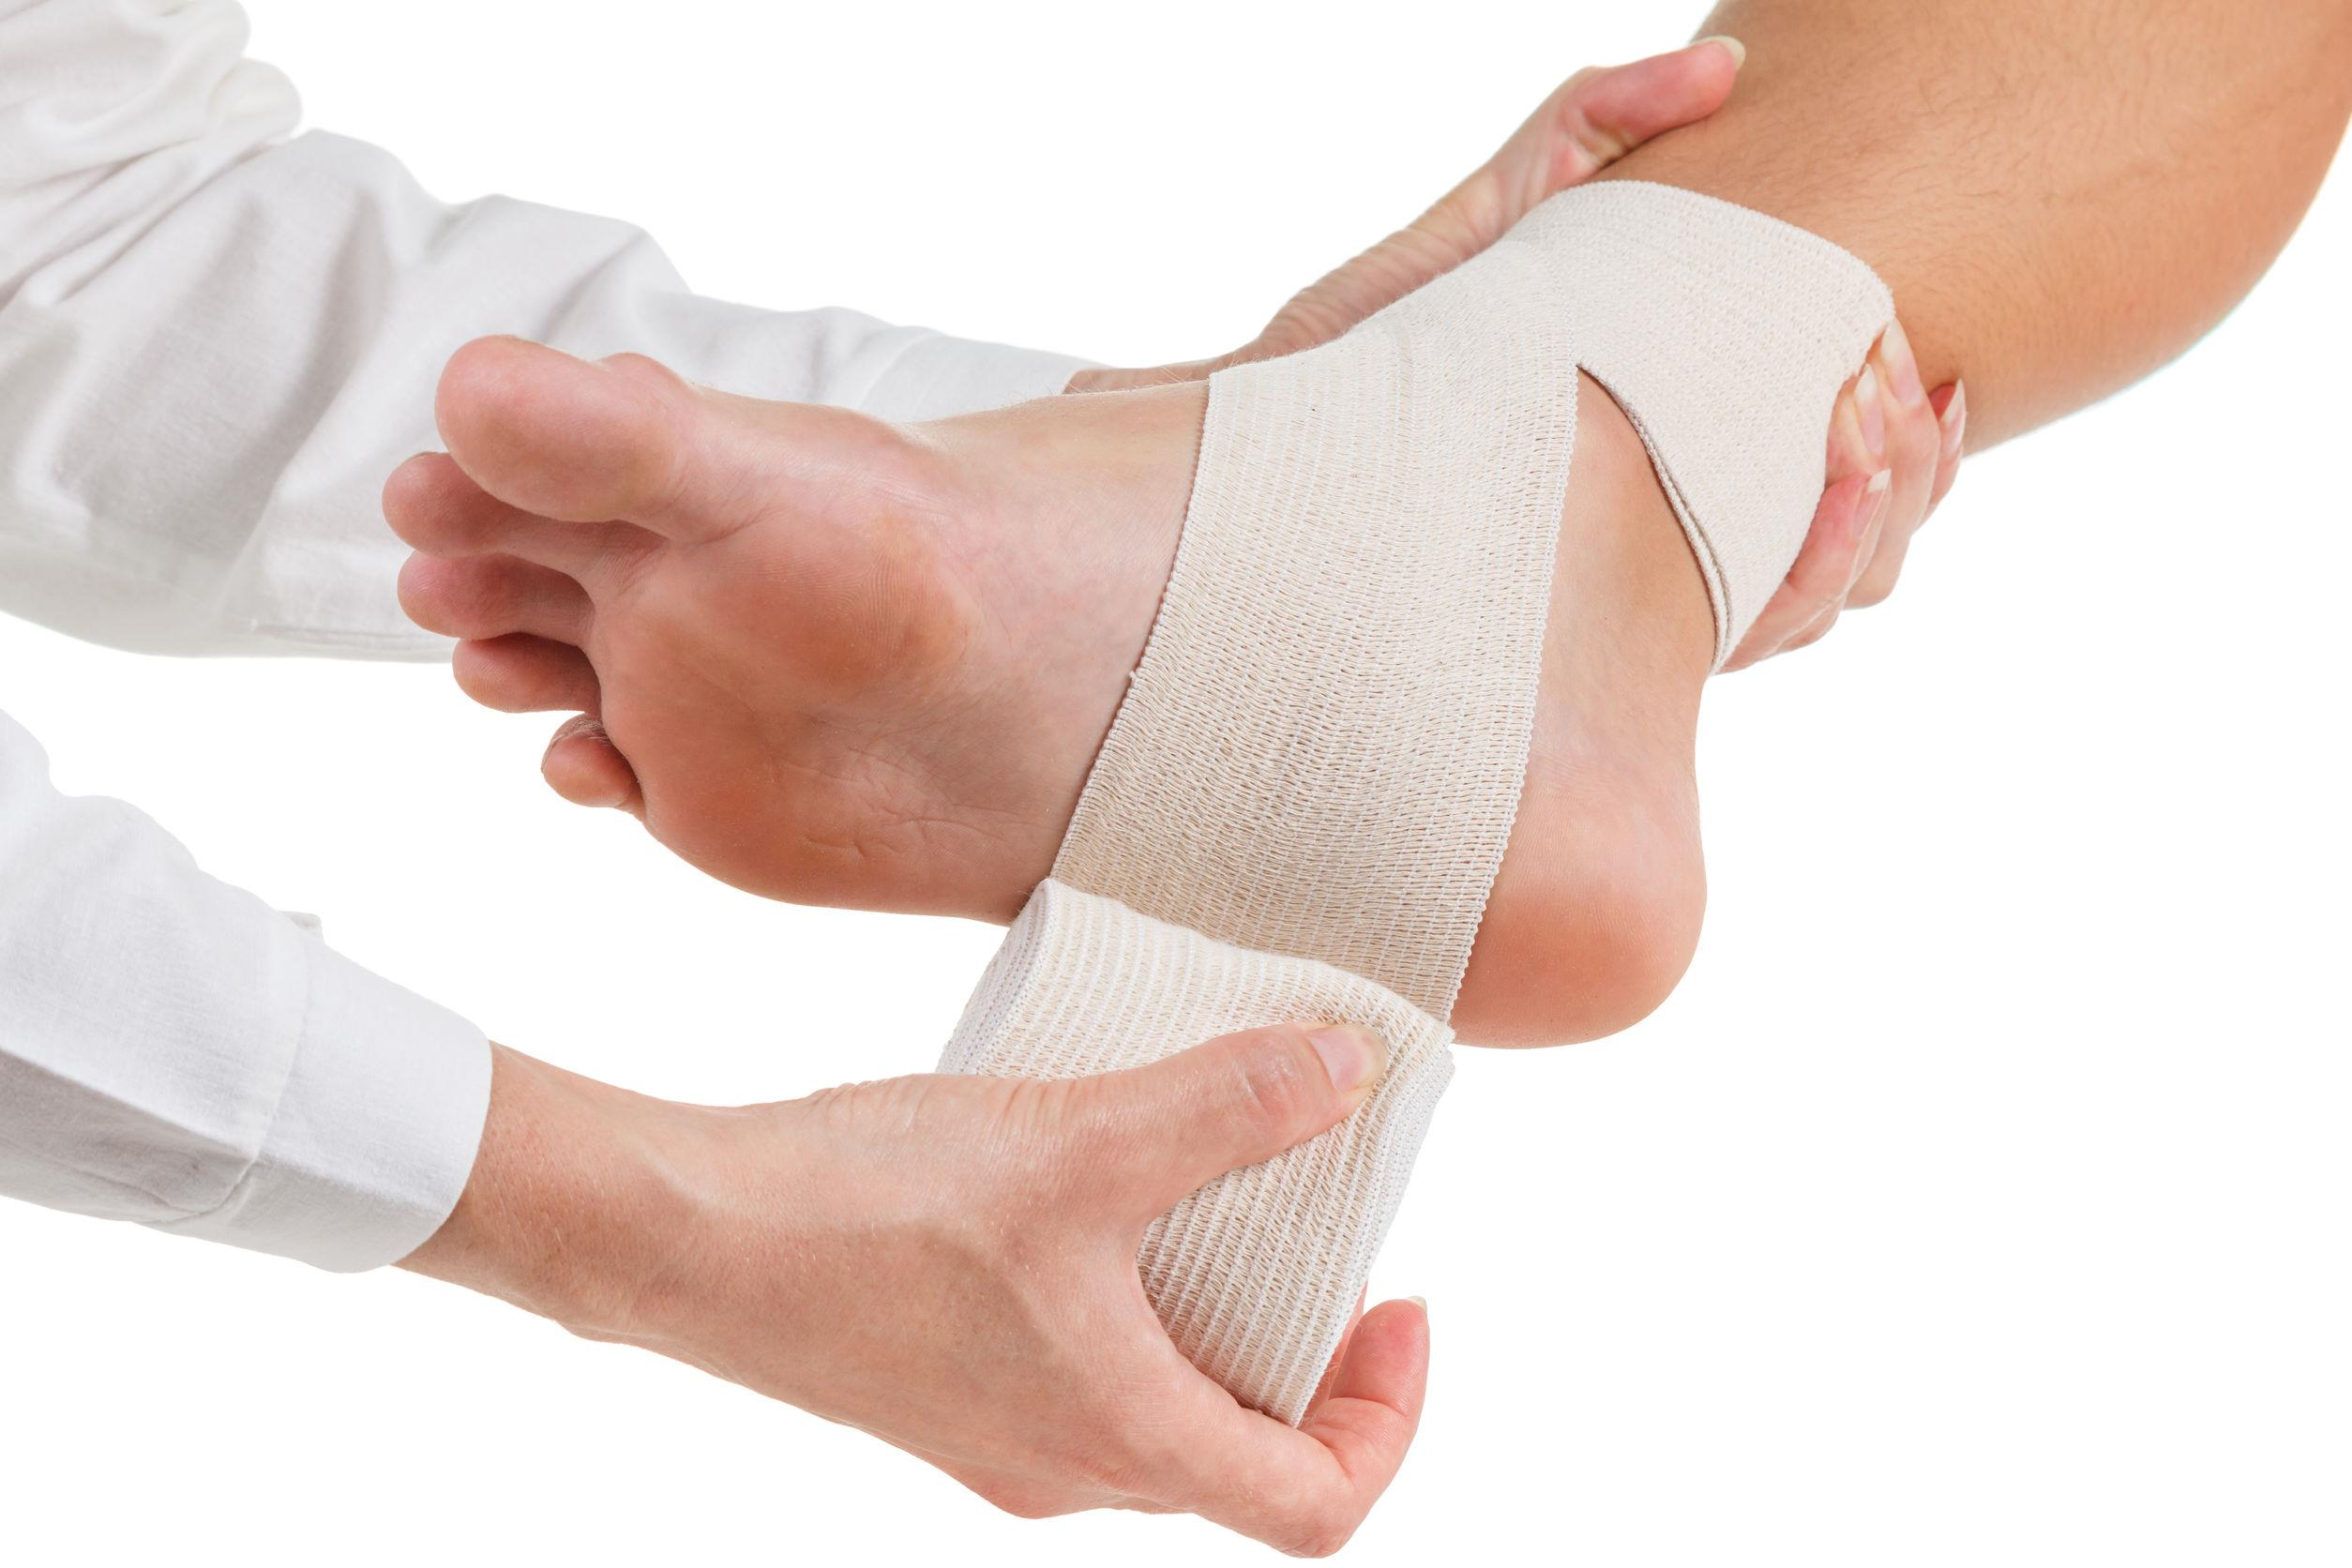 Guide to Compression Bandages